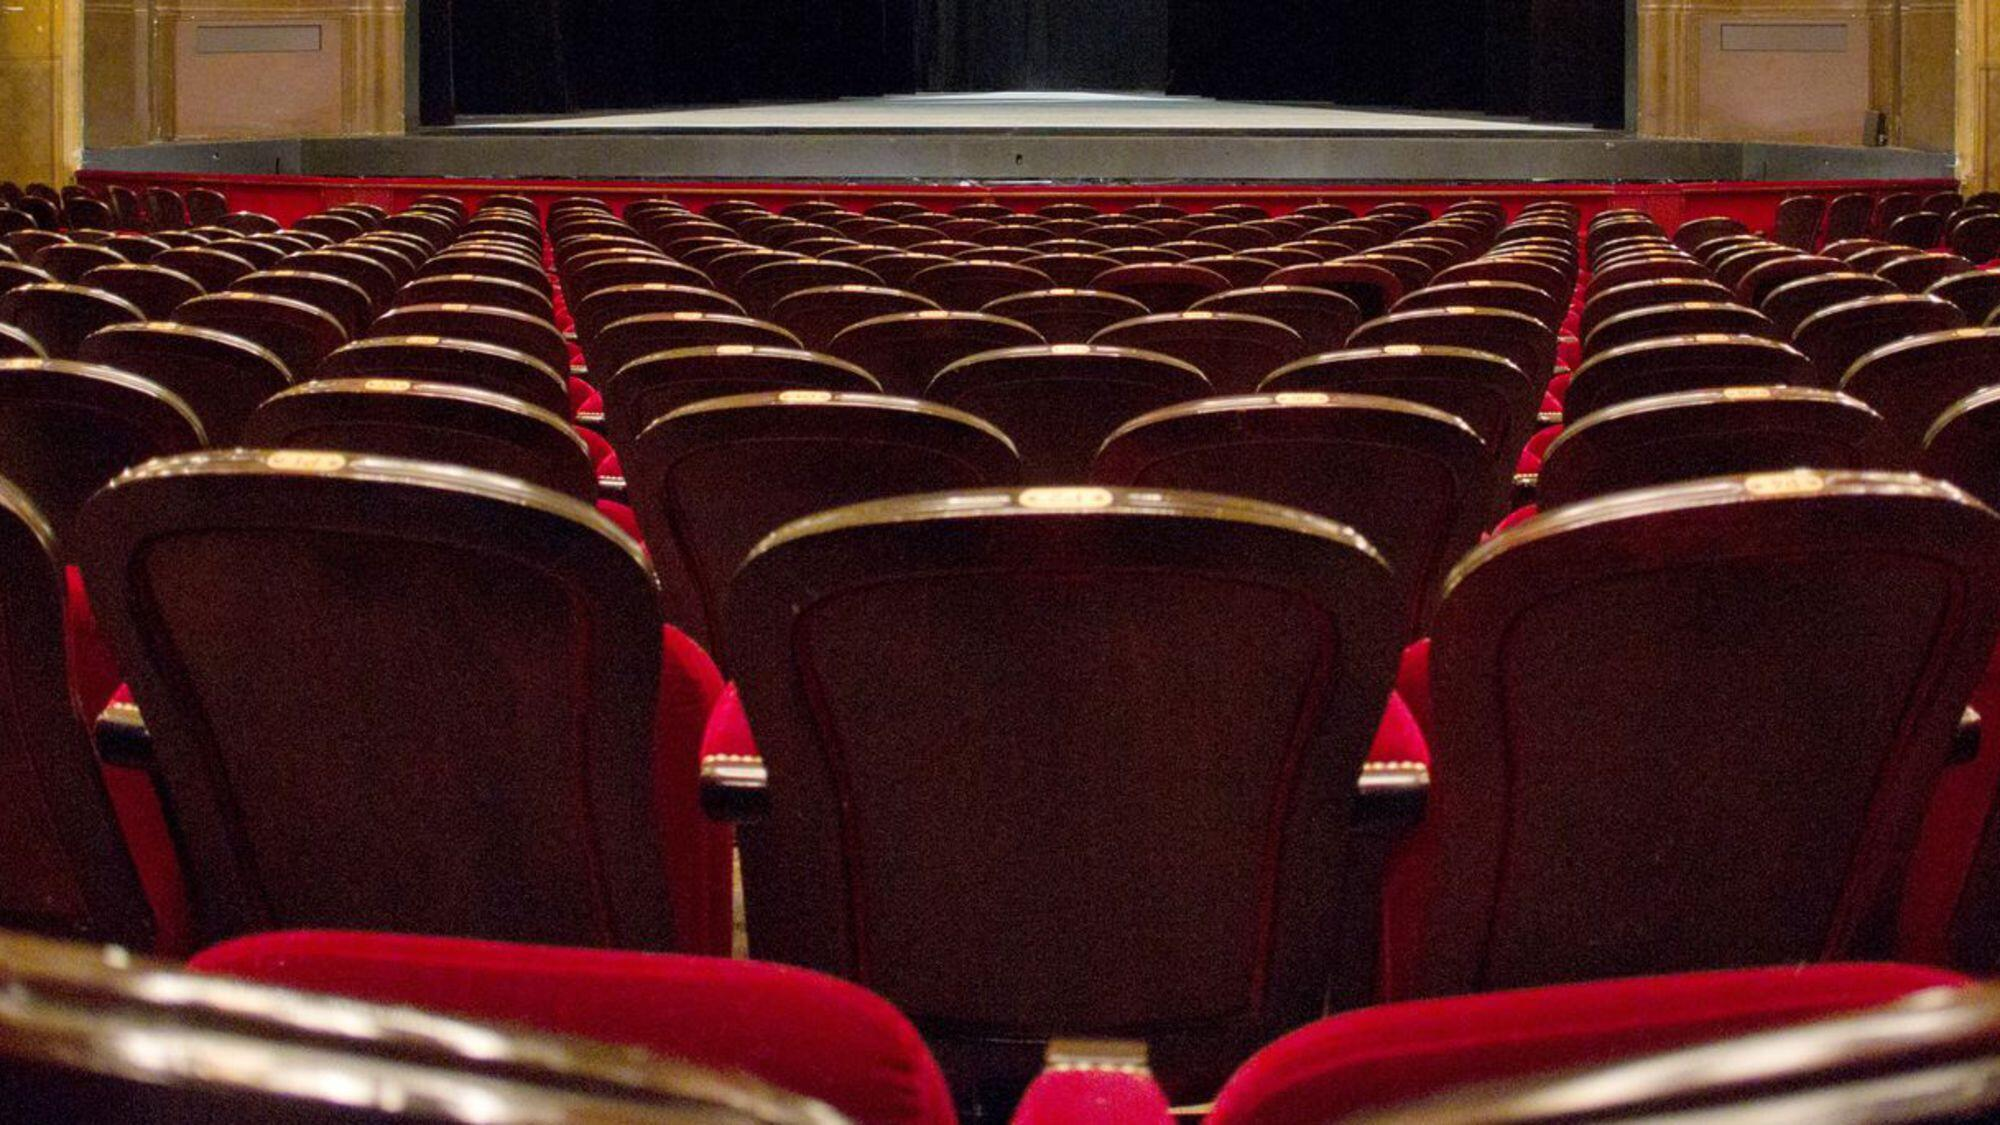 The Covid-19 crisis means theatres and cinemas remain closed